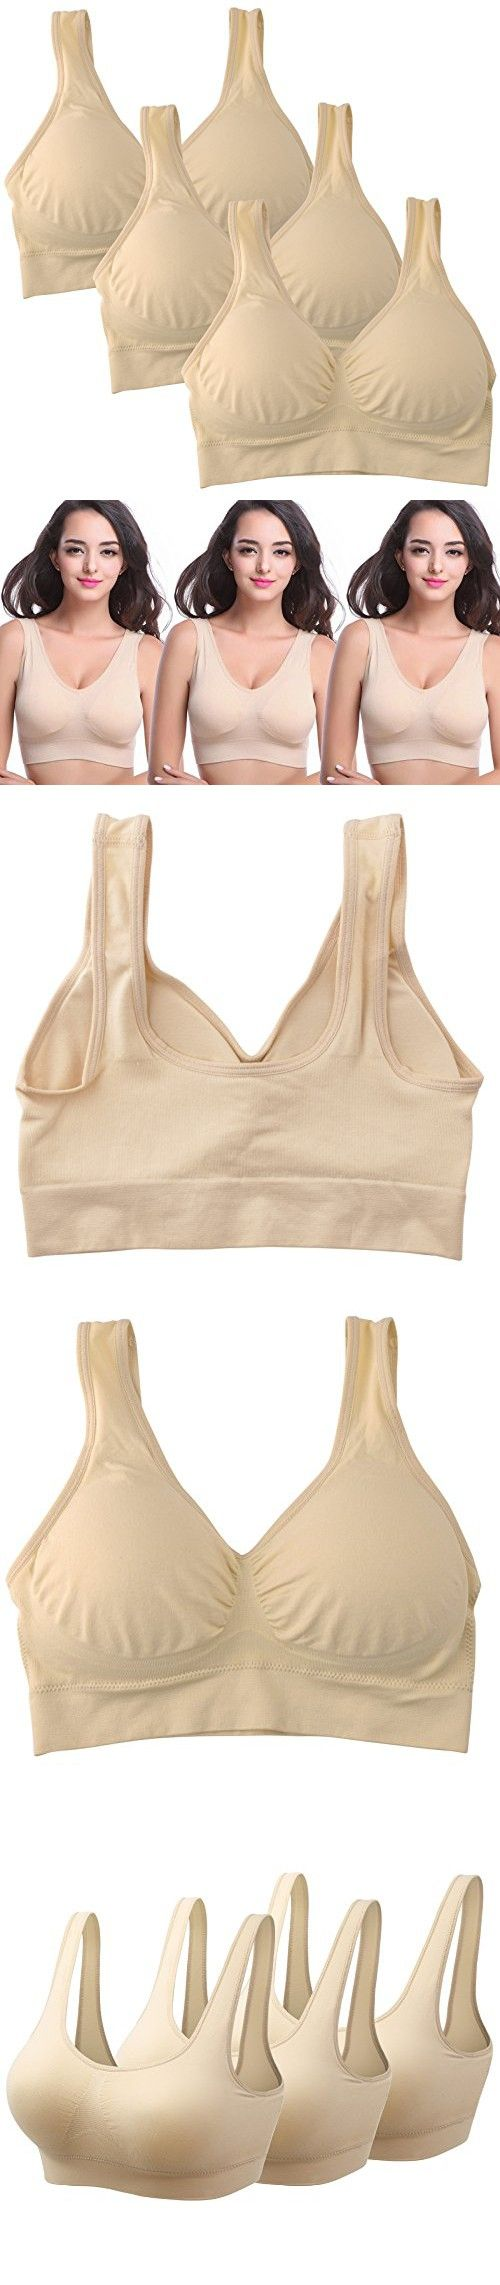 Mirity Padded Sports Bras For Women Freedom Seamless Racerback Spanx Yoga Bra Pack of 3, 3 Beige, Large